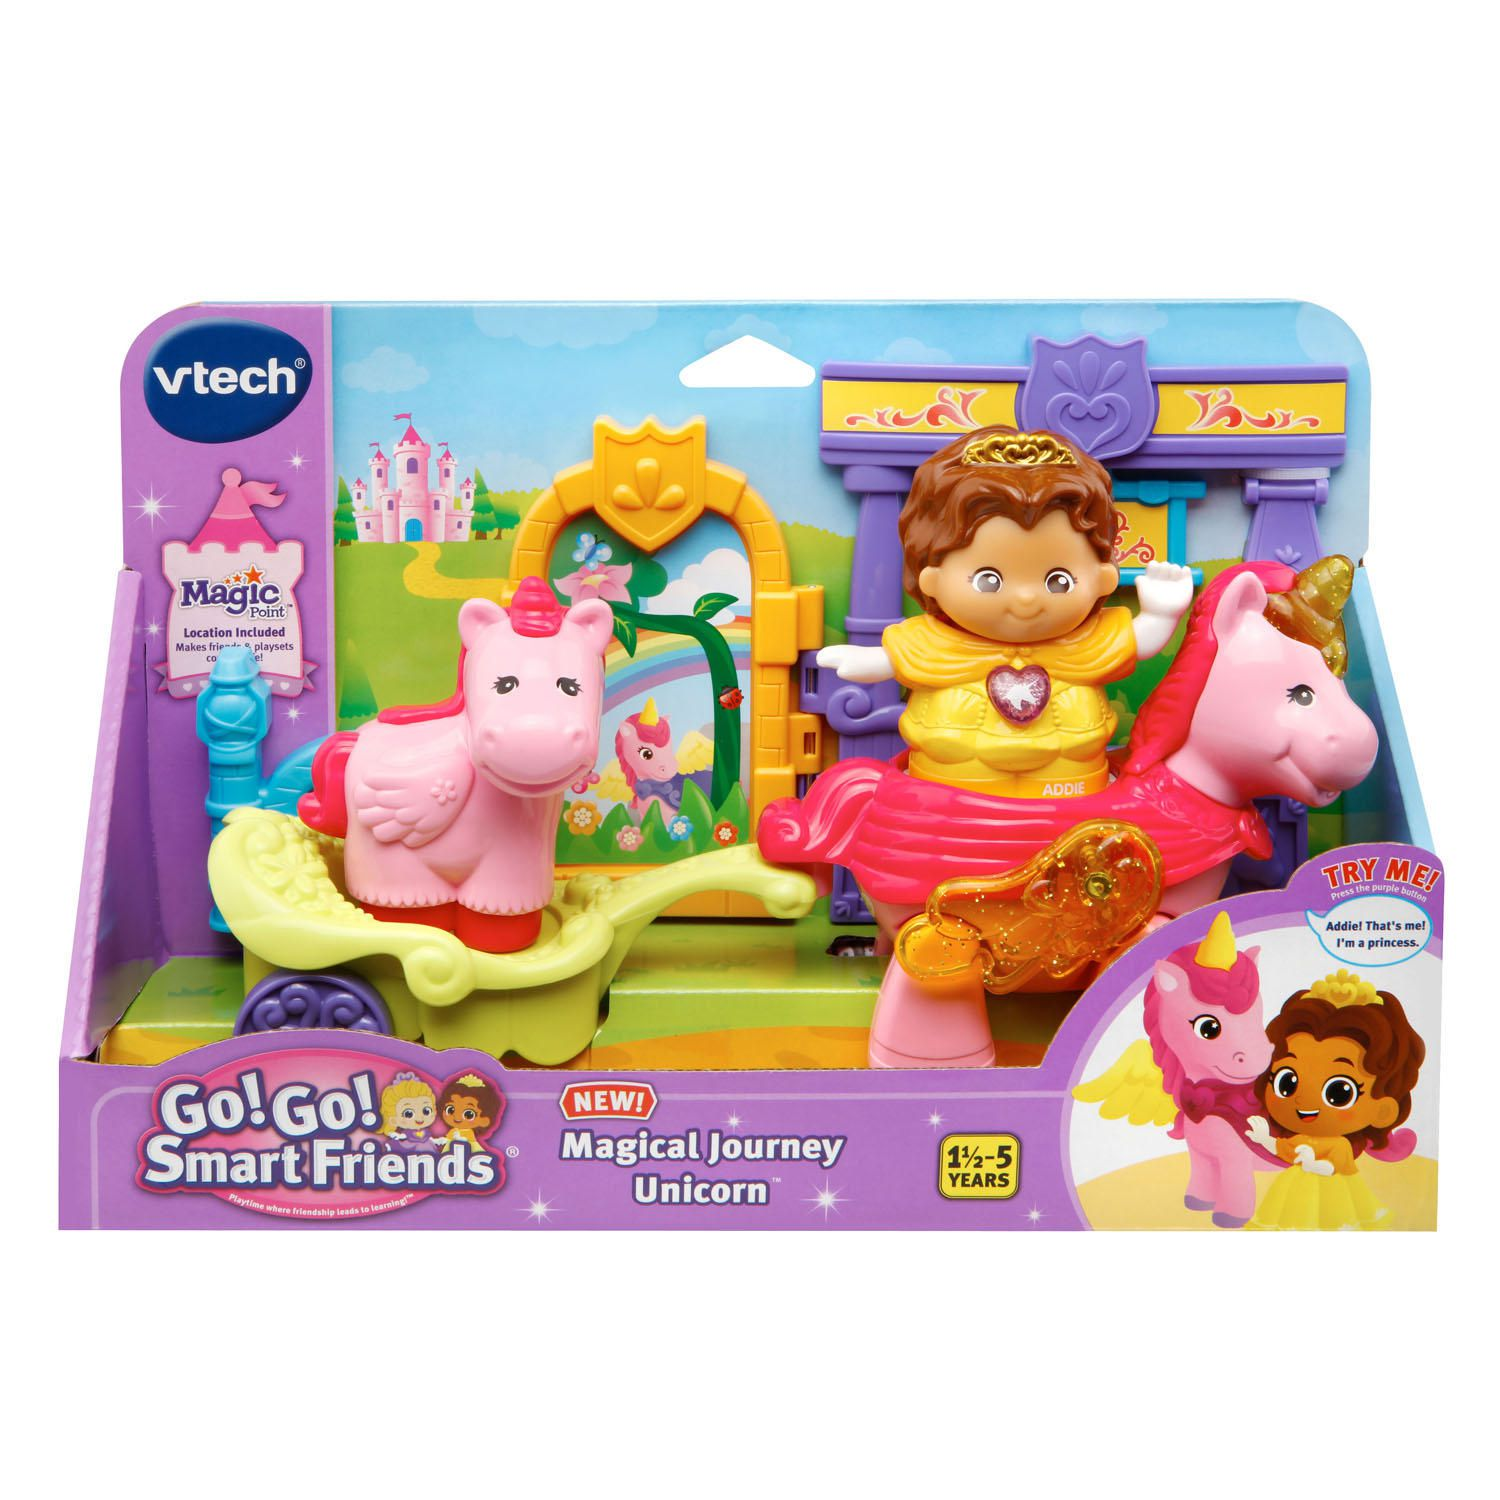 Vtech Go Go Smart Friends Magical Journey Unicorn Playset